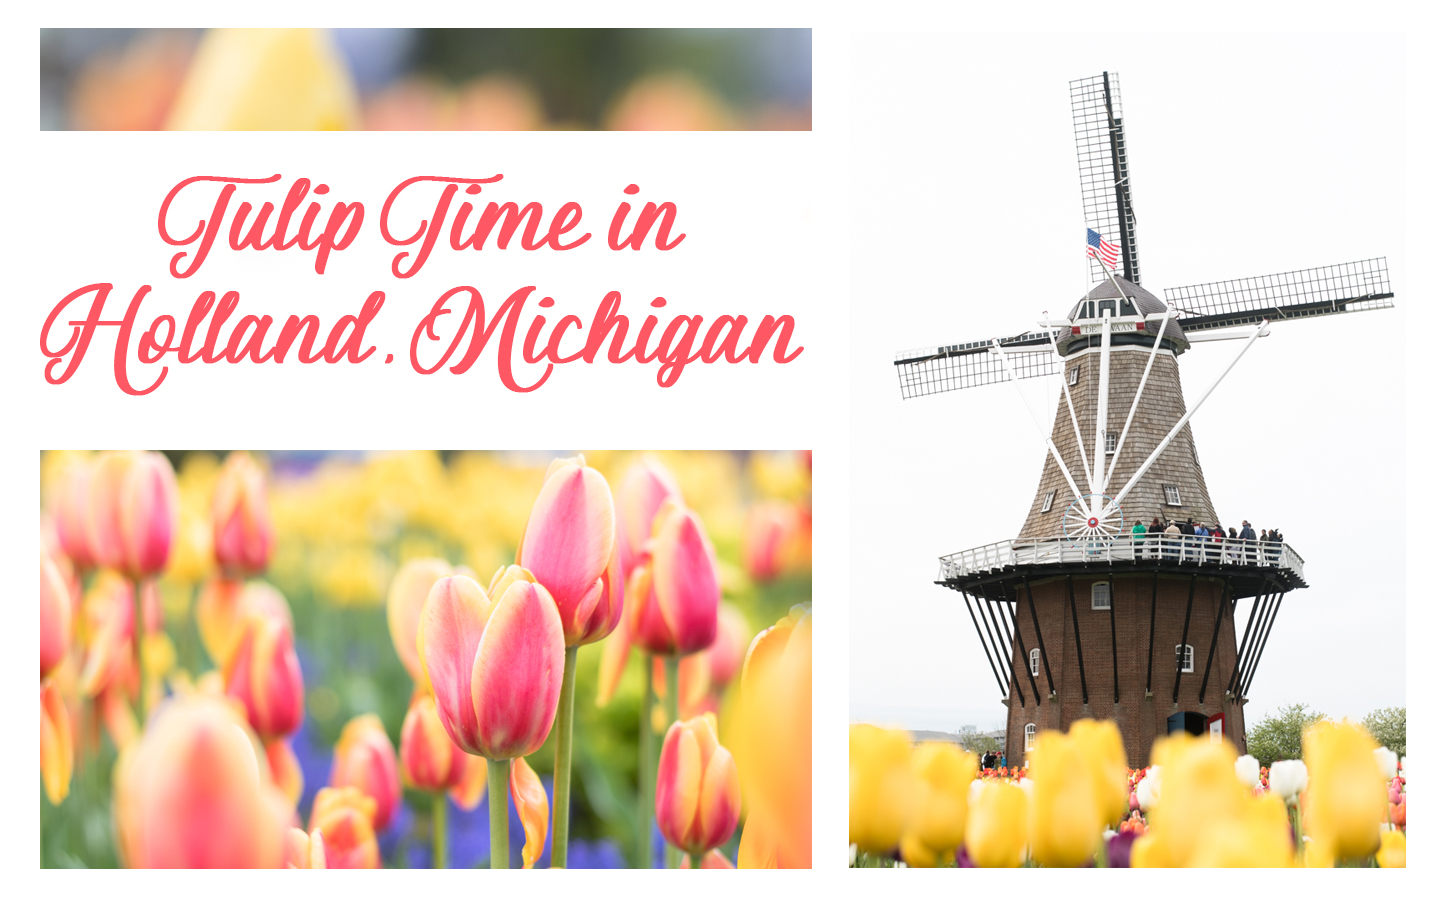 A guide to Tulip Time in Holland, Michigan. #holland #michigan